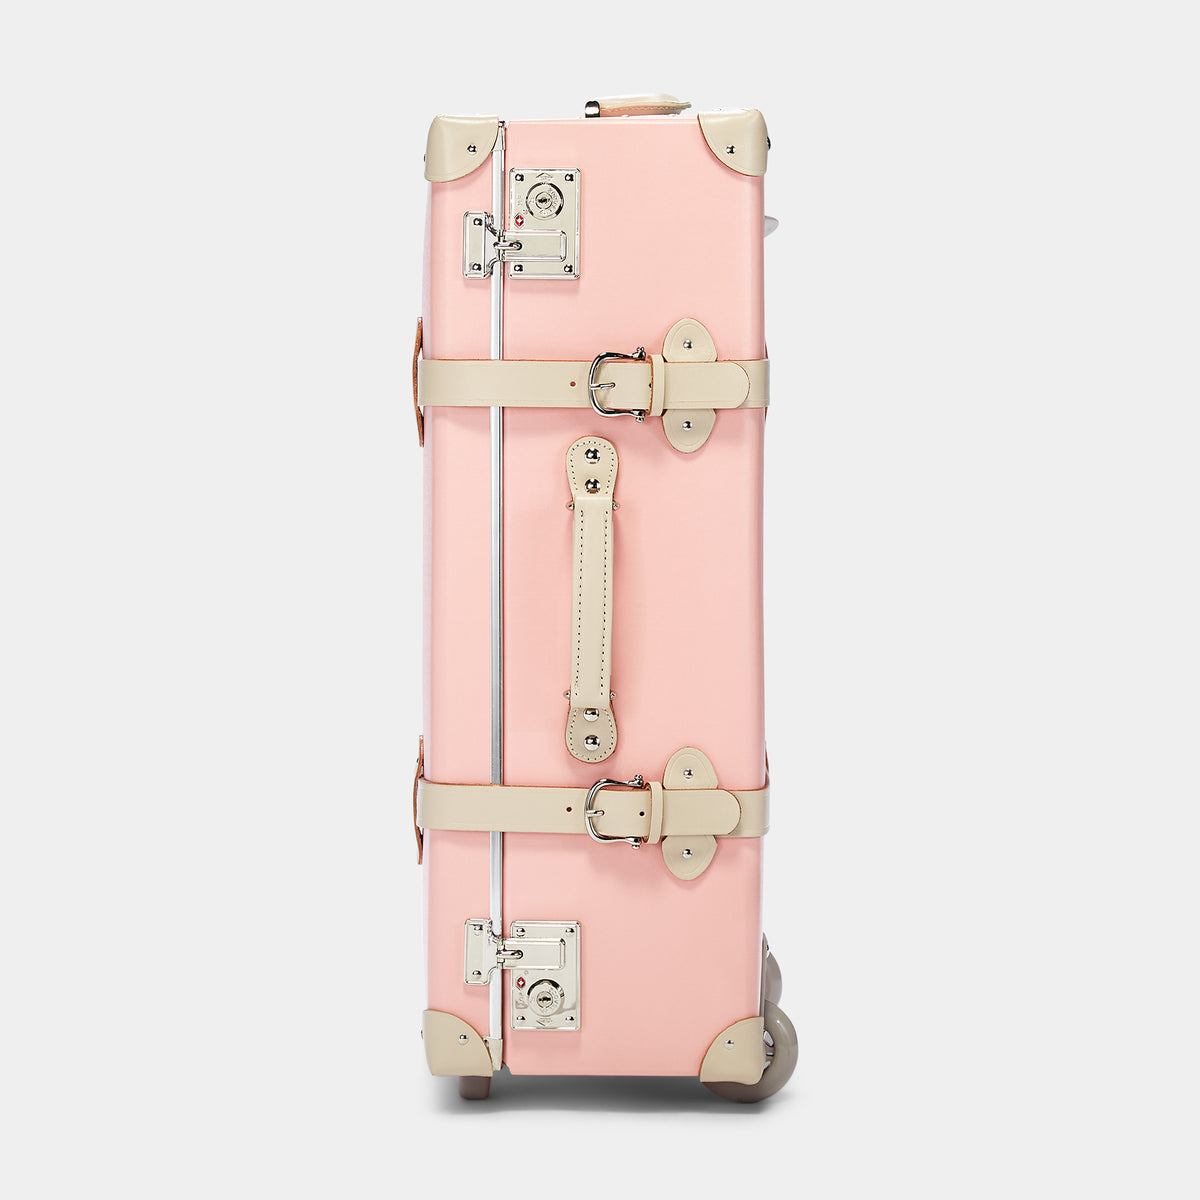 The Botanist Stowaway in Pink - Vintage-Inspired Suitcase - Exterior Side